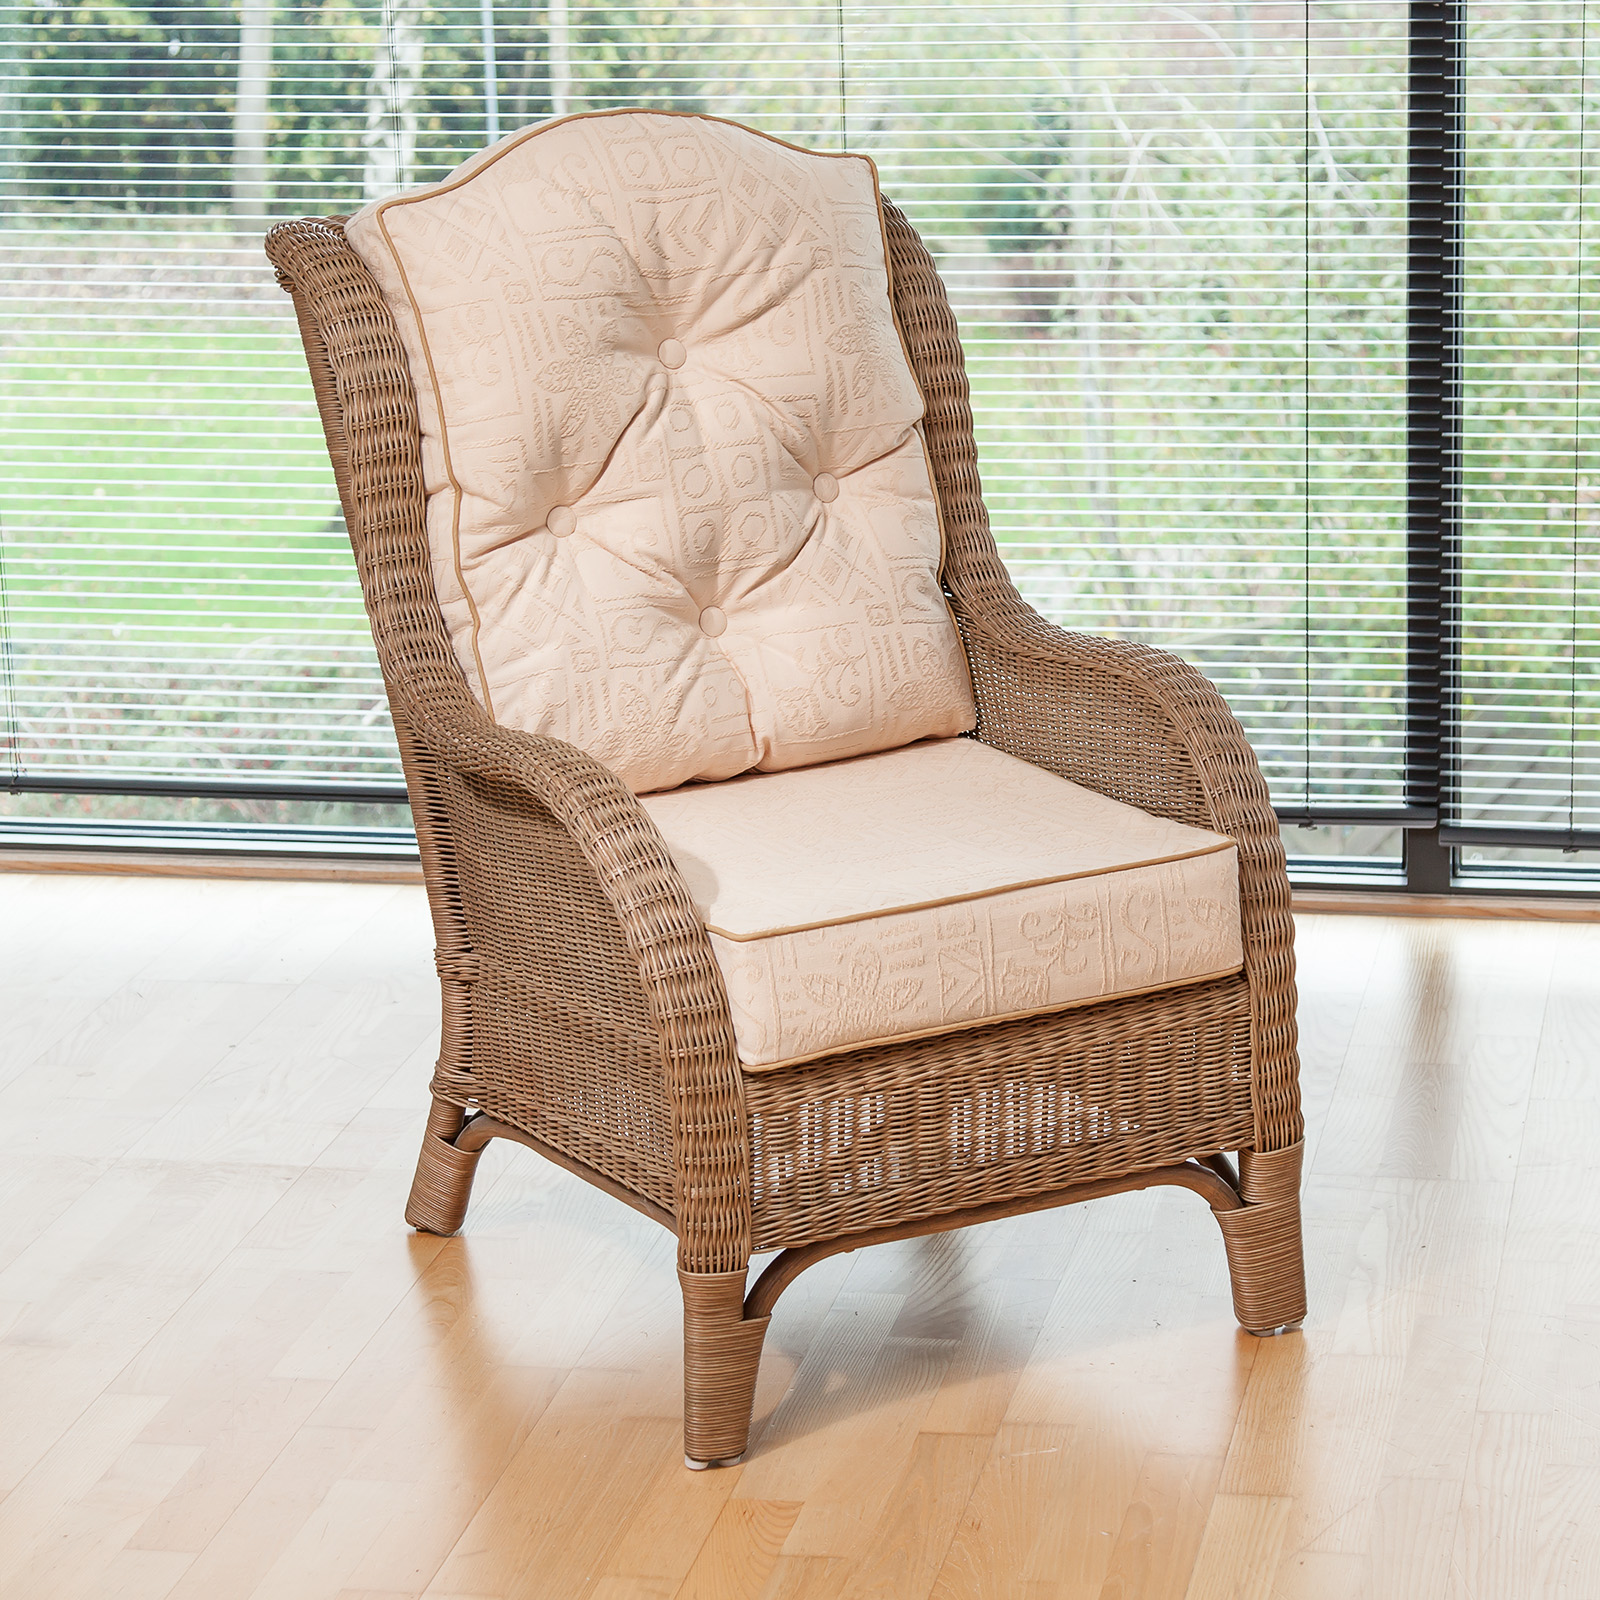 Chairs For Reading Alfresia Conservatory Furniture Denver Wicker Reading